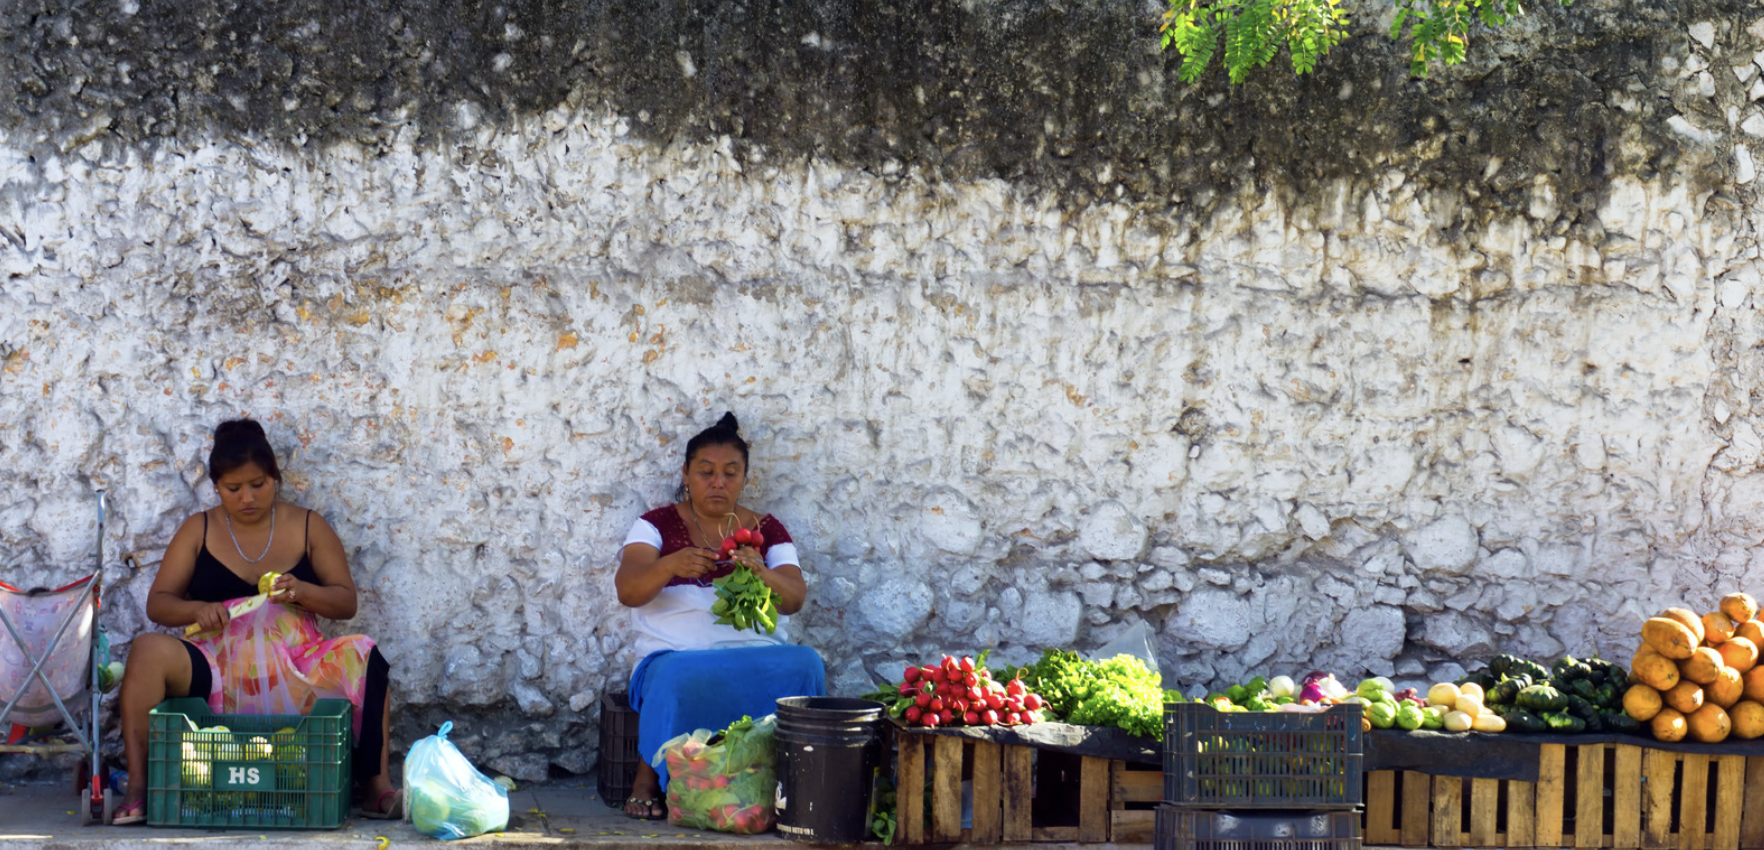 Women in Mexico at the market